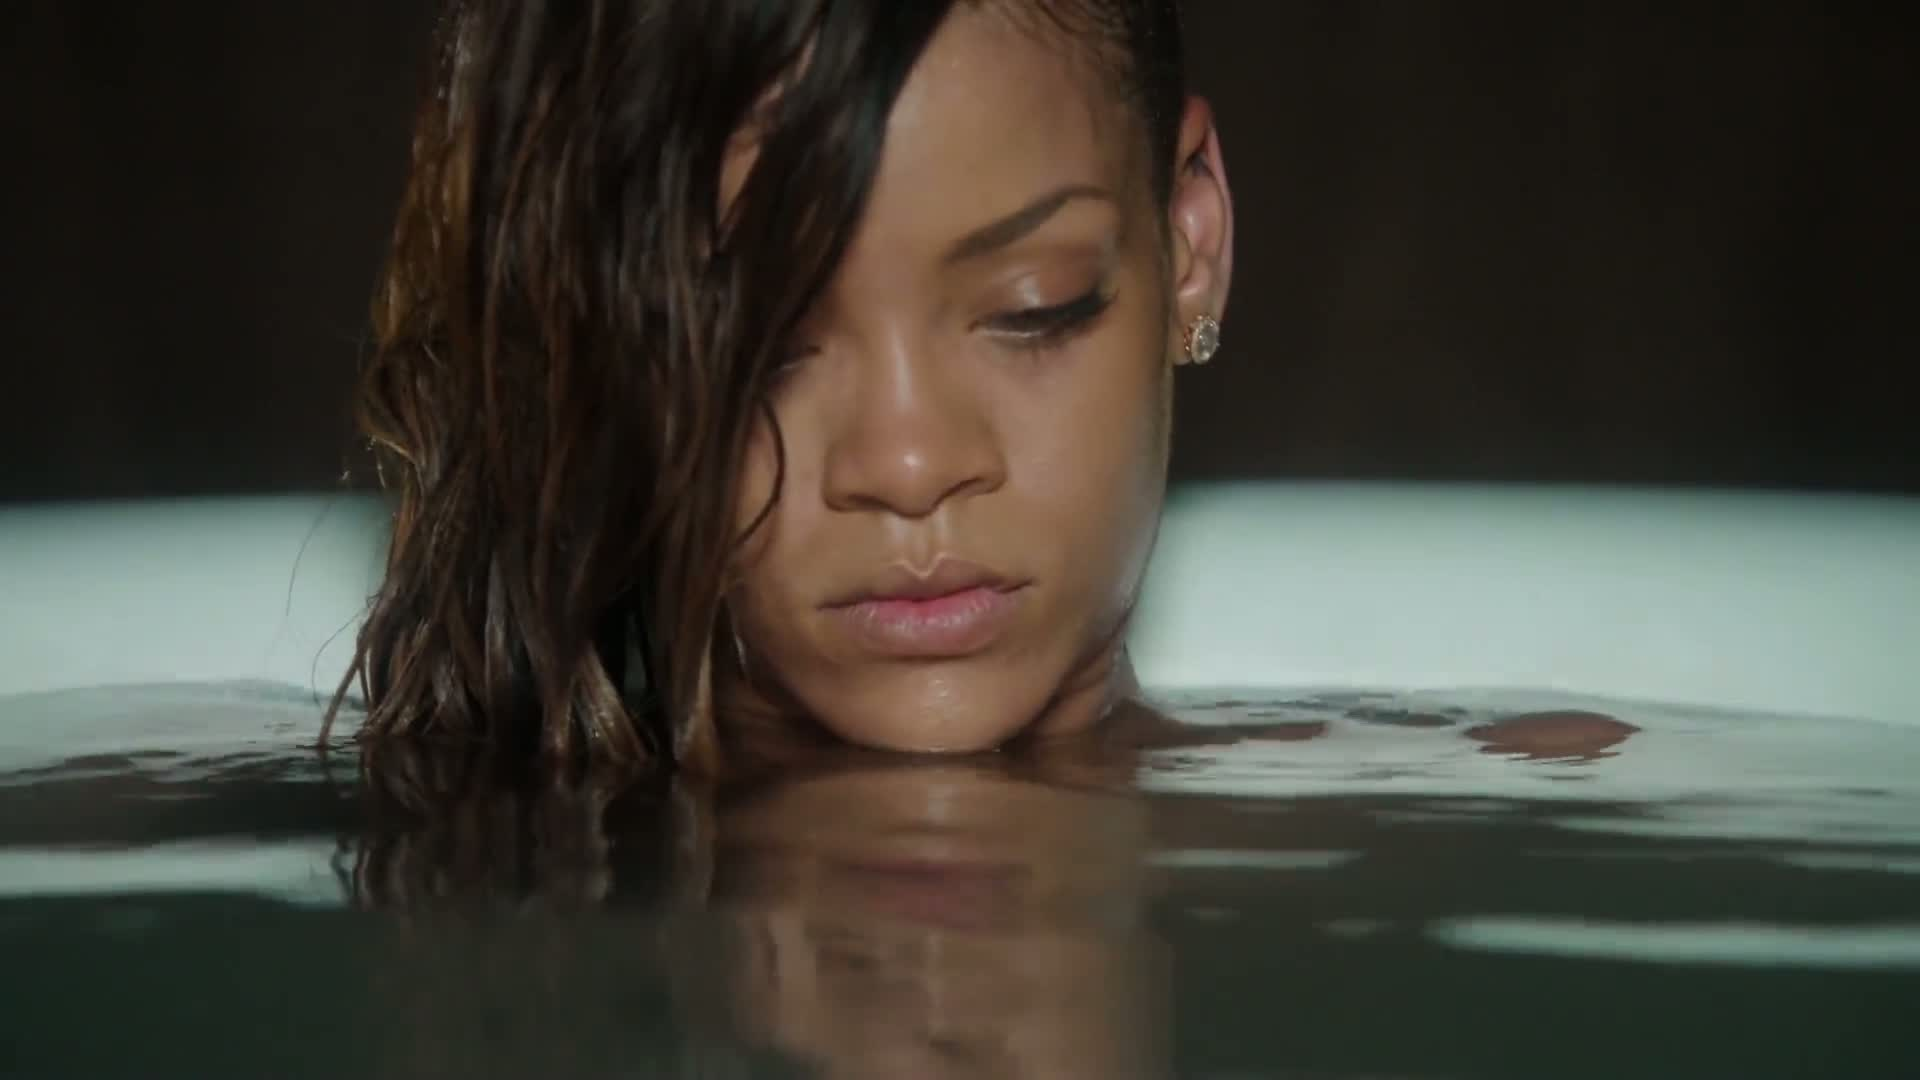 Rihanna Ft. Mikky Ekko - Stay